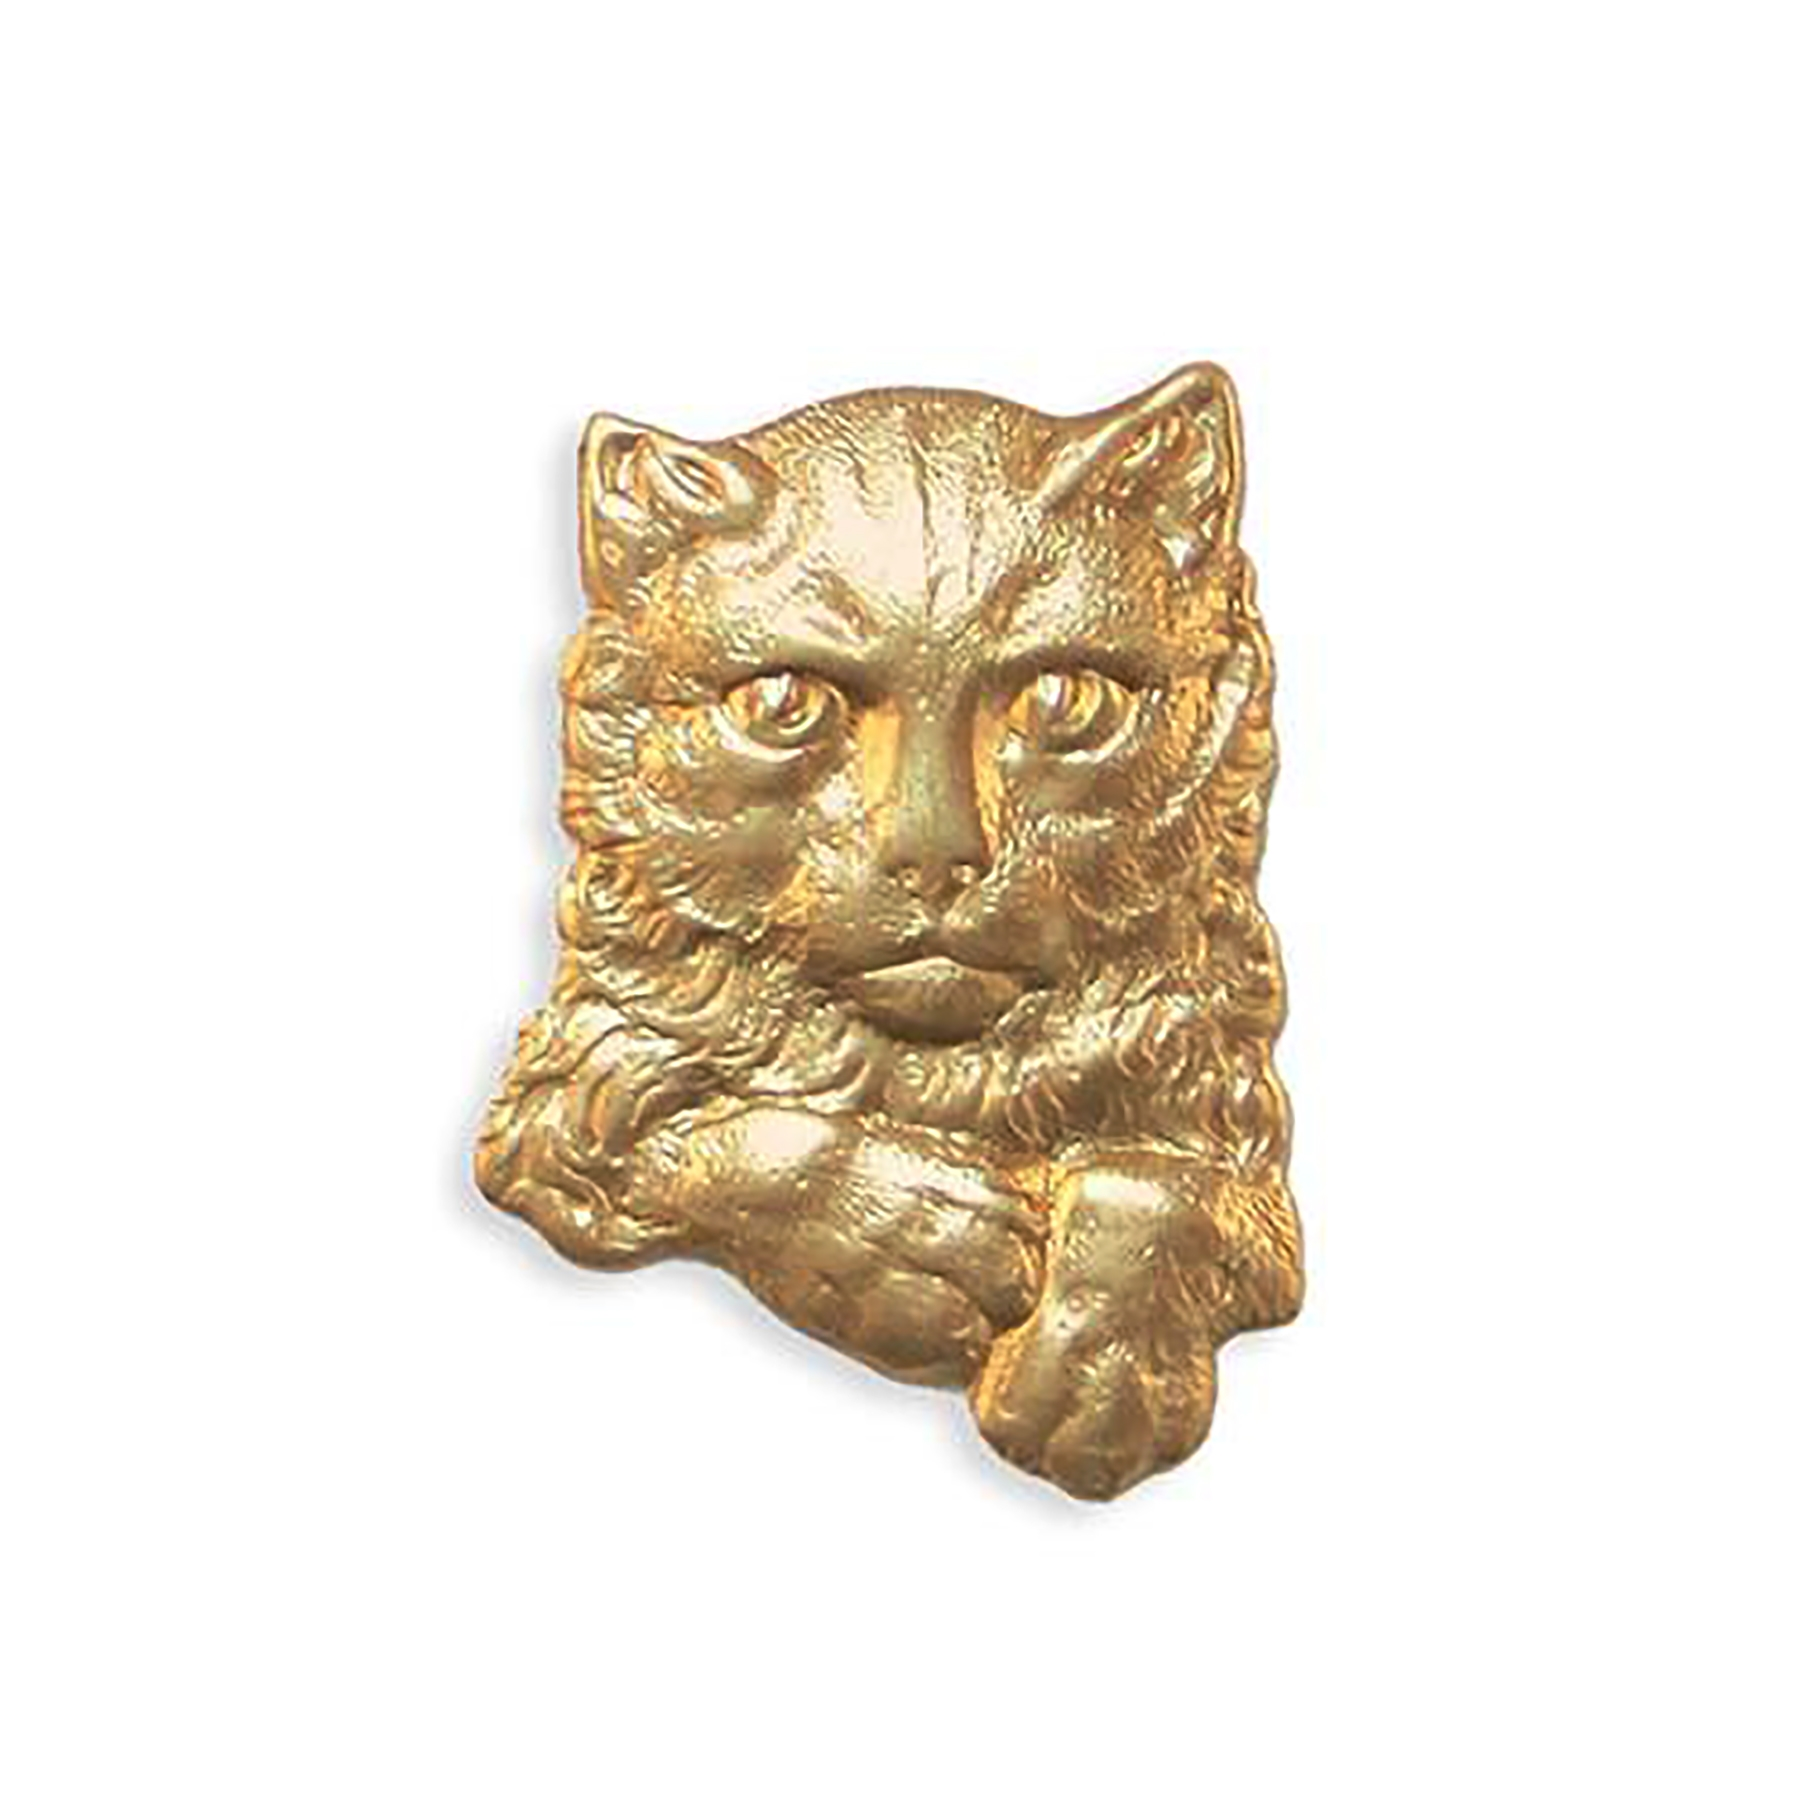 Buster Kitty, Cat Stamping, raw brass, Brass Stamping, 30 x 22mm, Cat, Kitty, Jewelry Finding, Nickel Free, USA Made, B'sue Boutiques, Brass Base Plated, 0100